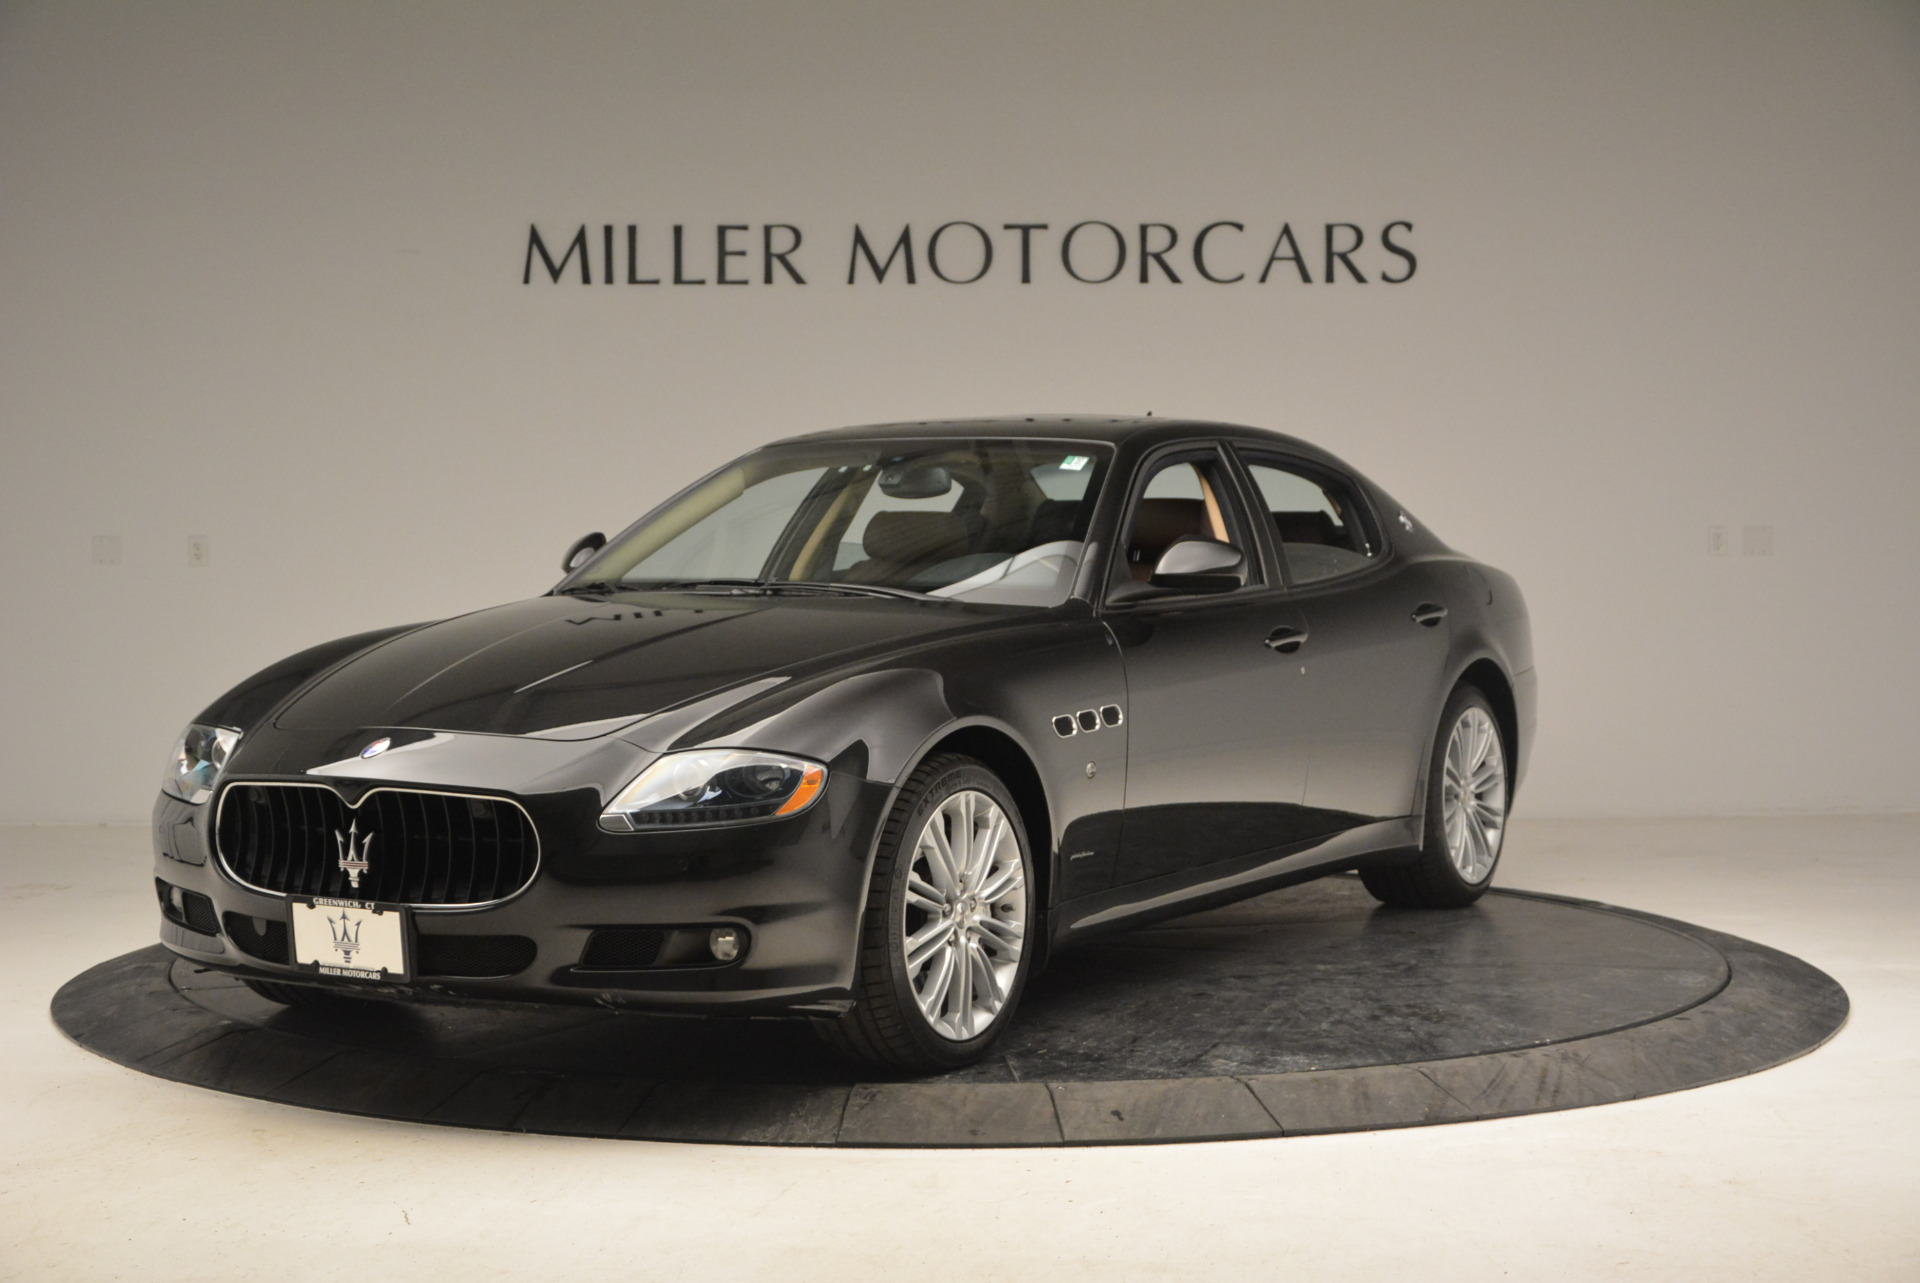 Used 2013 Maserati Quattroporte S for sale Sold at Rolls-Royce Motor Cars Greenwich in Greenwich CT 06830 1